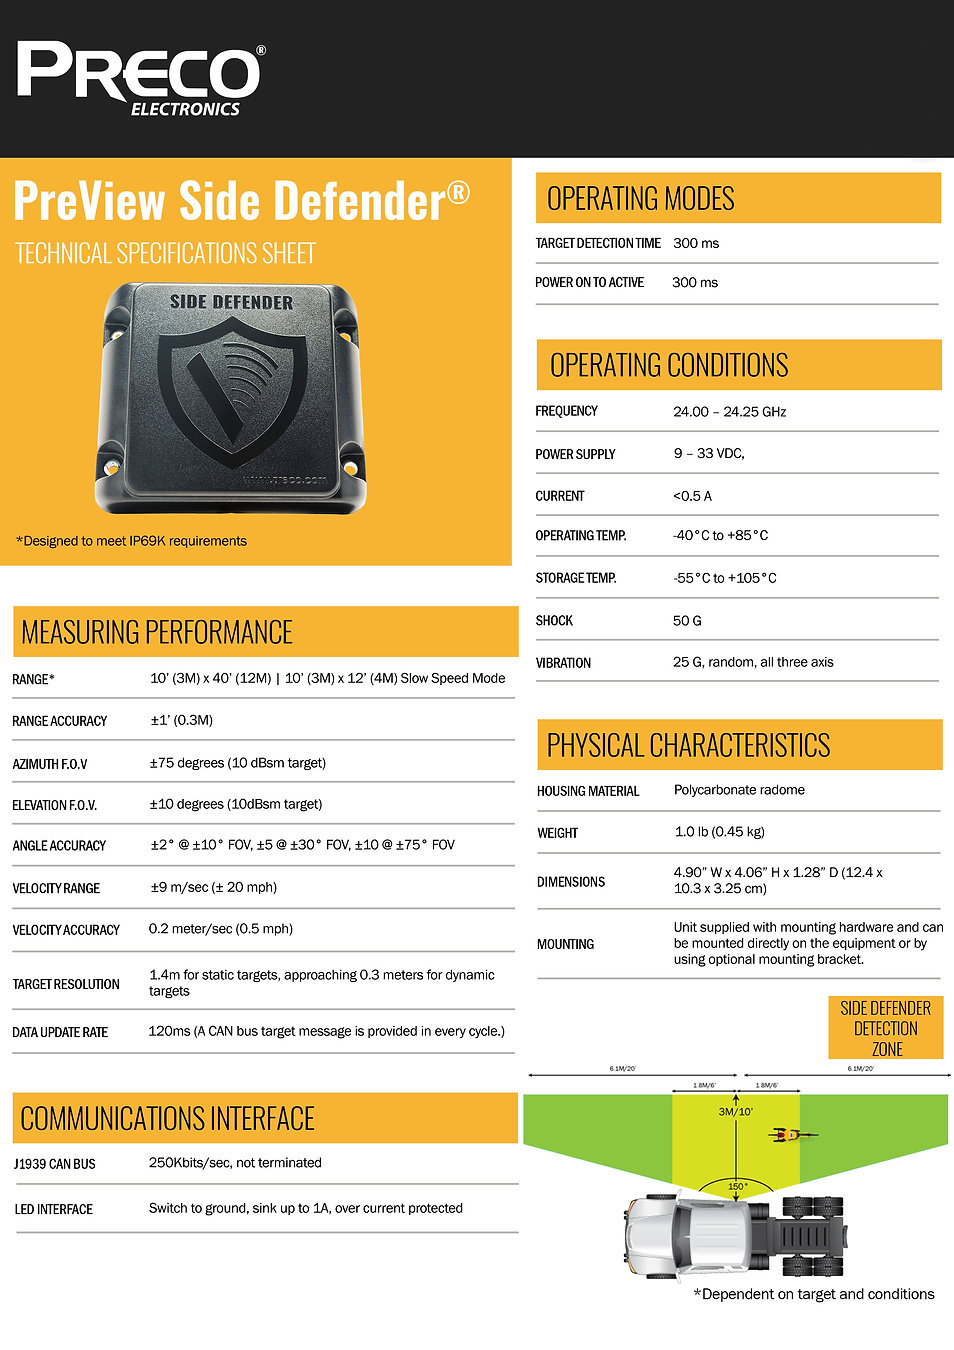 PreView-Side-Defender-Data-Sheet.jpg